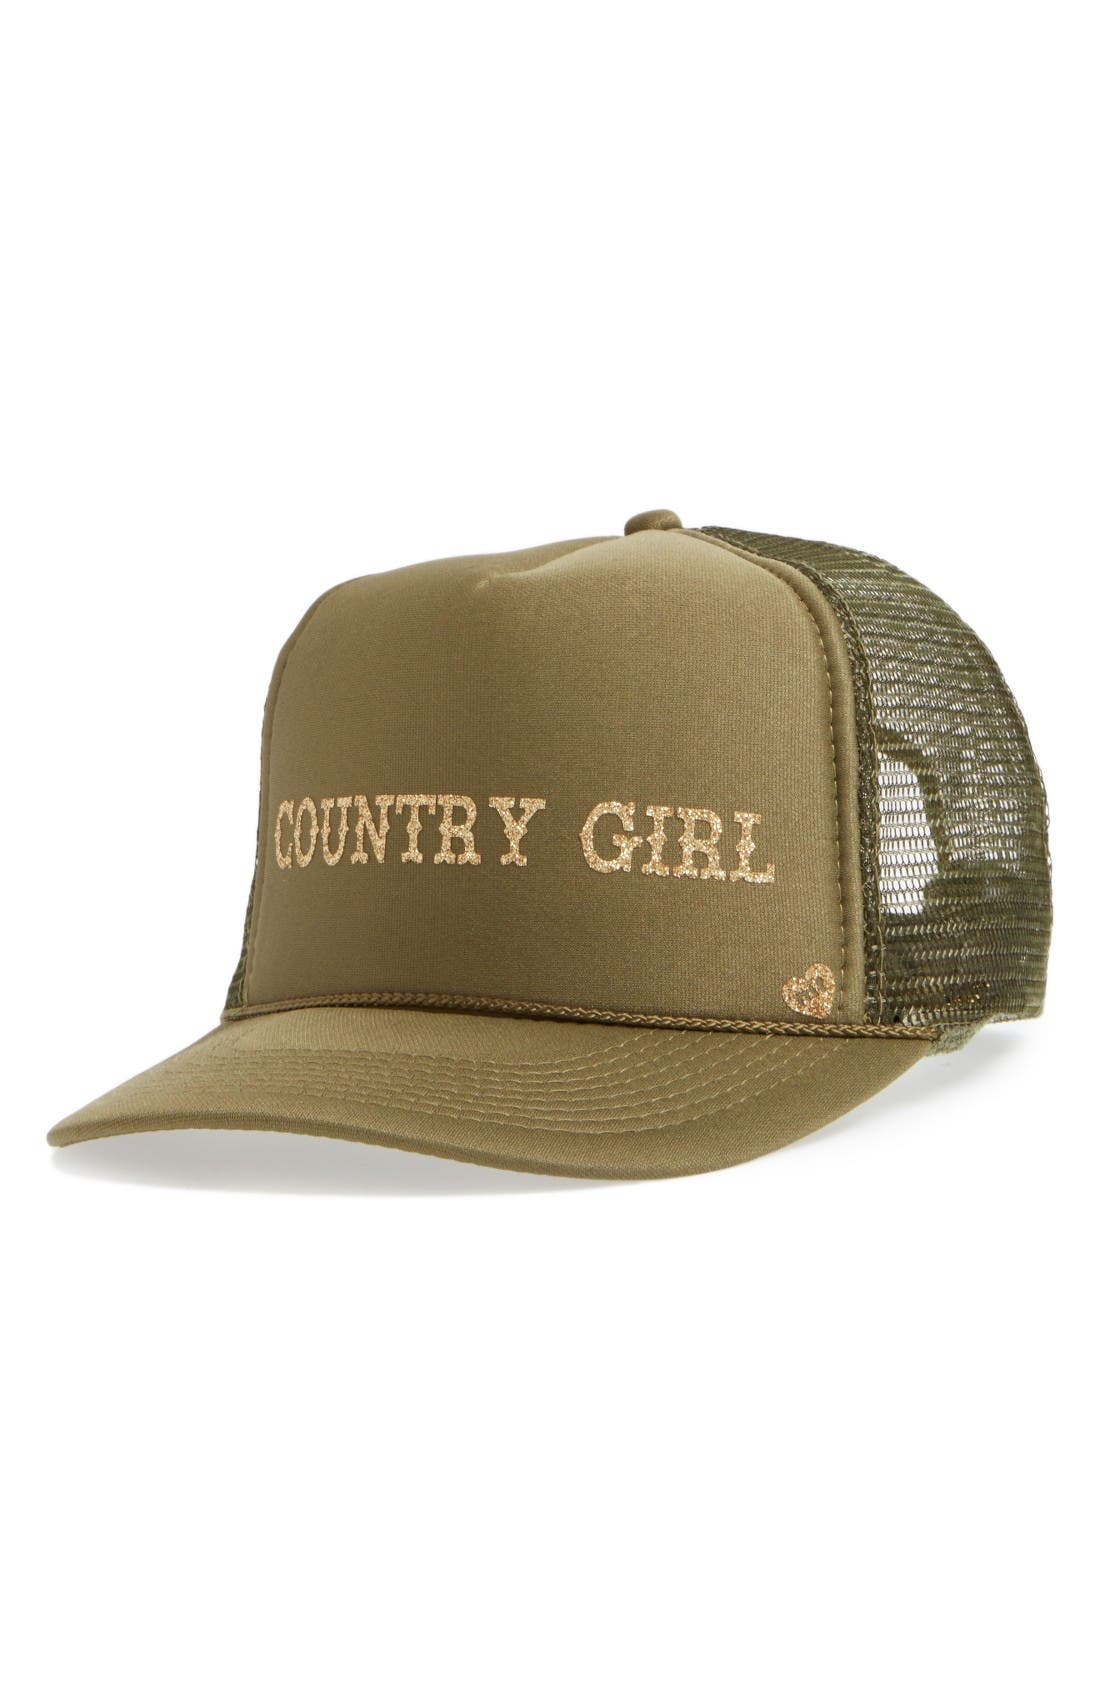 Main Image - Mother Trucker Hats Country Girl Trucker Hat